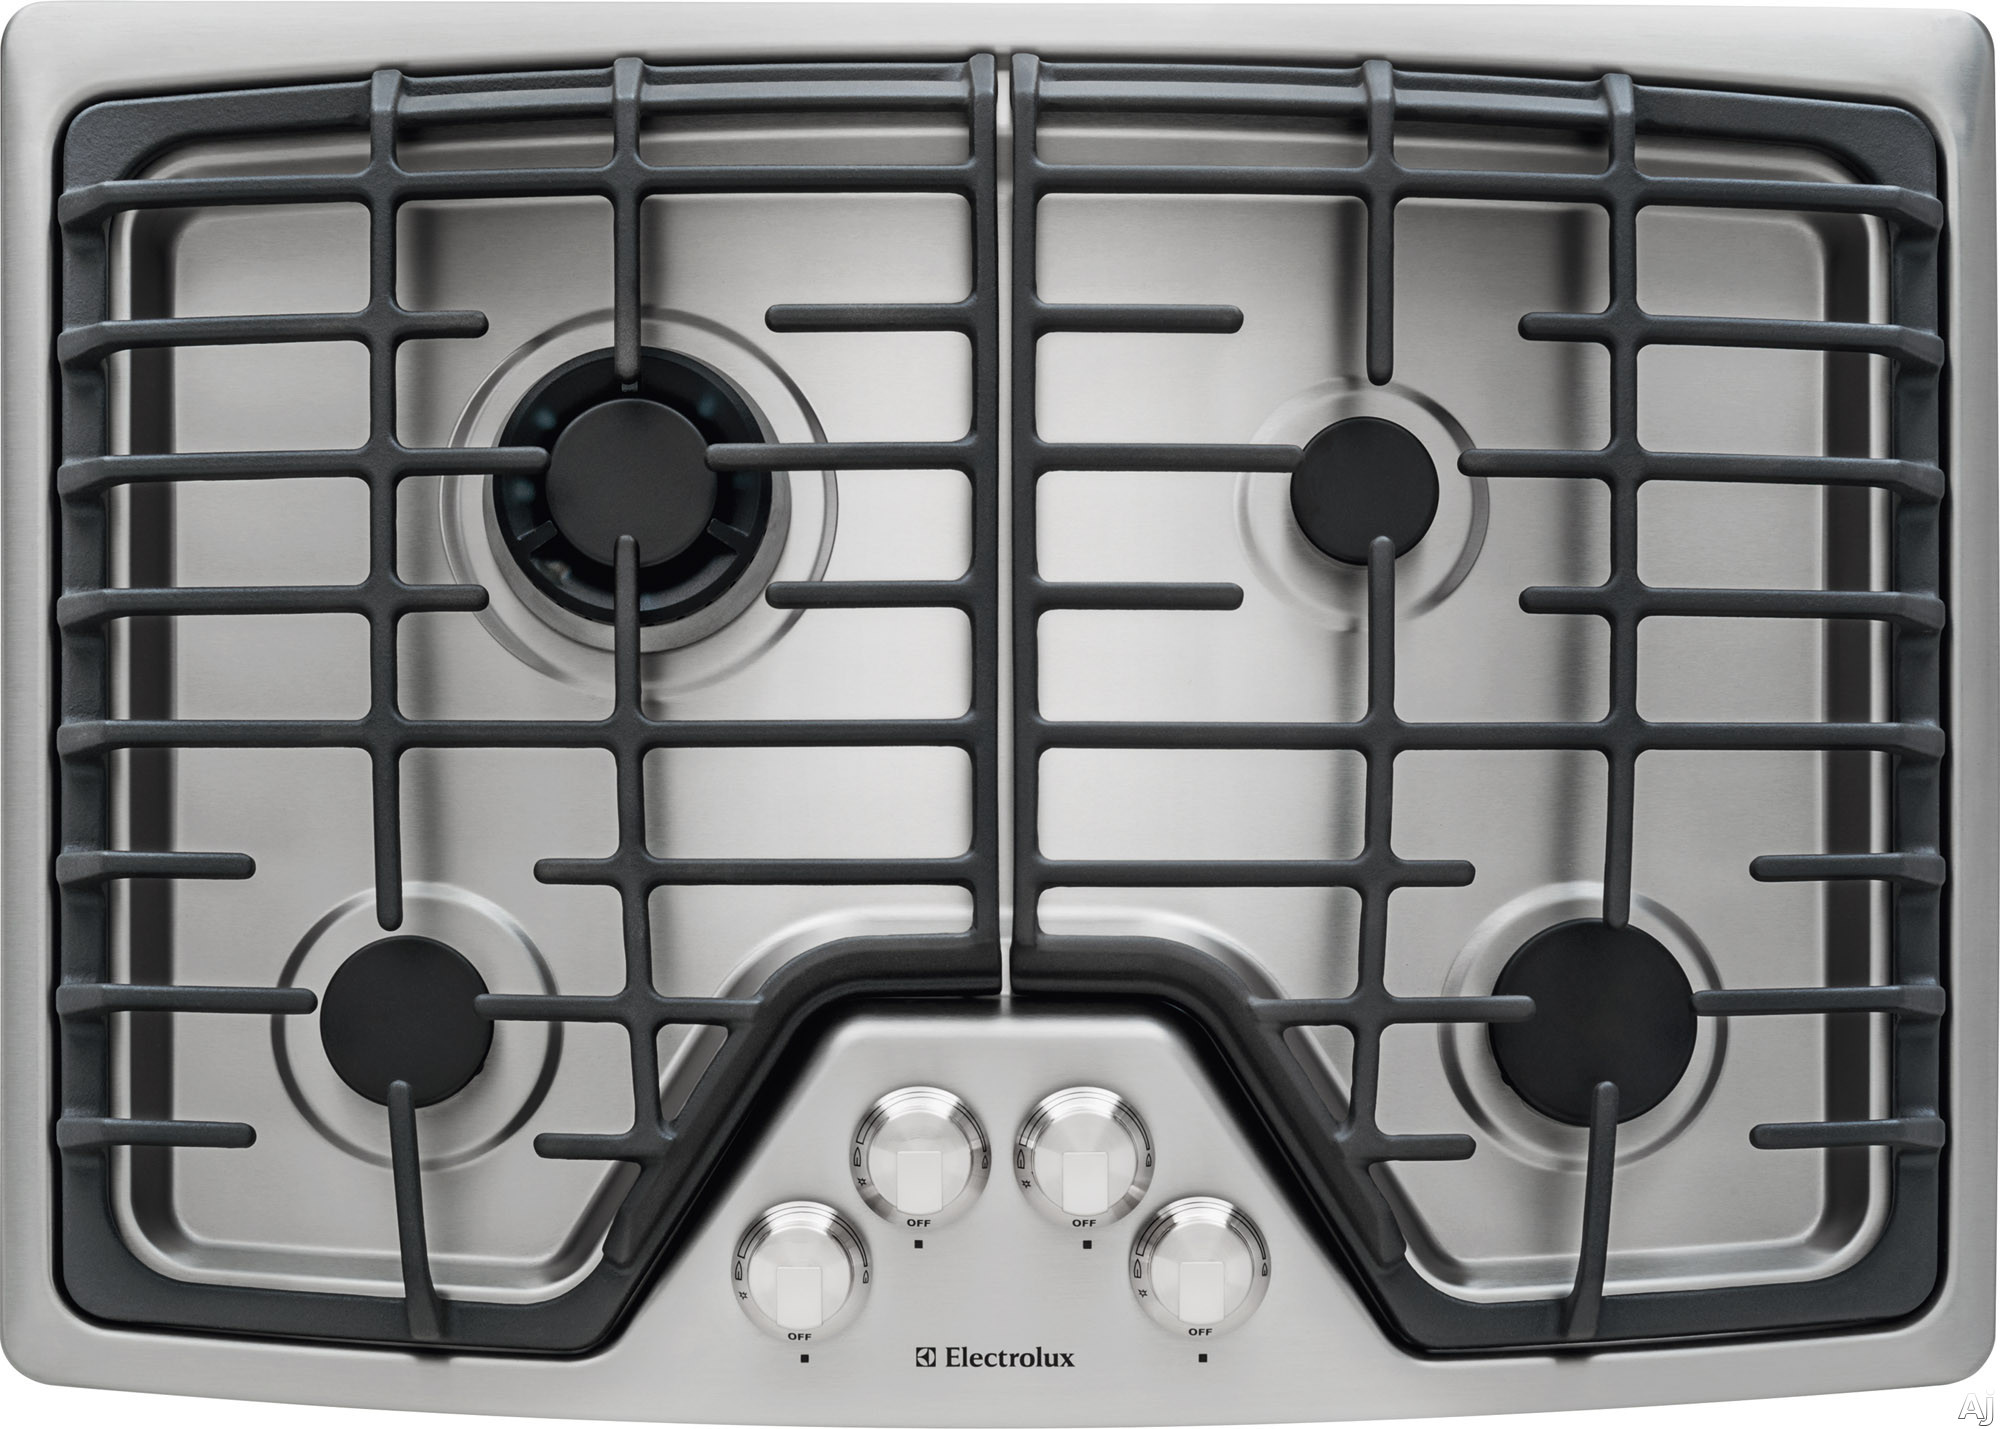 Electrolux EW30GC55PS 30 Inch Gas Cooktop with 4 Sealed Burners, Min-2-Max Dual-Flame Sealed Burner, Professional-Grade Control Knobs, Continuous Cast Iron Grates, ADA Compliant Design and Electric Pilotless Ignition: Stainless Steel